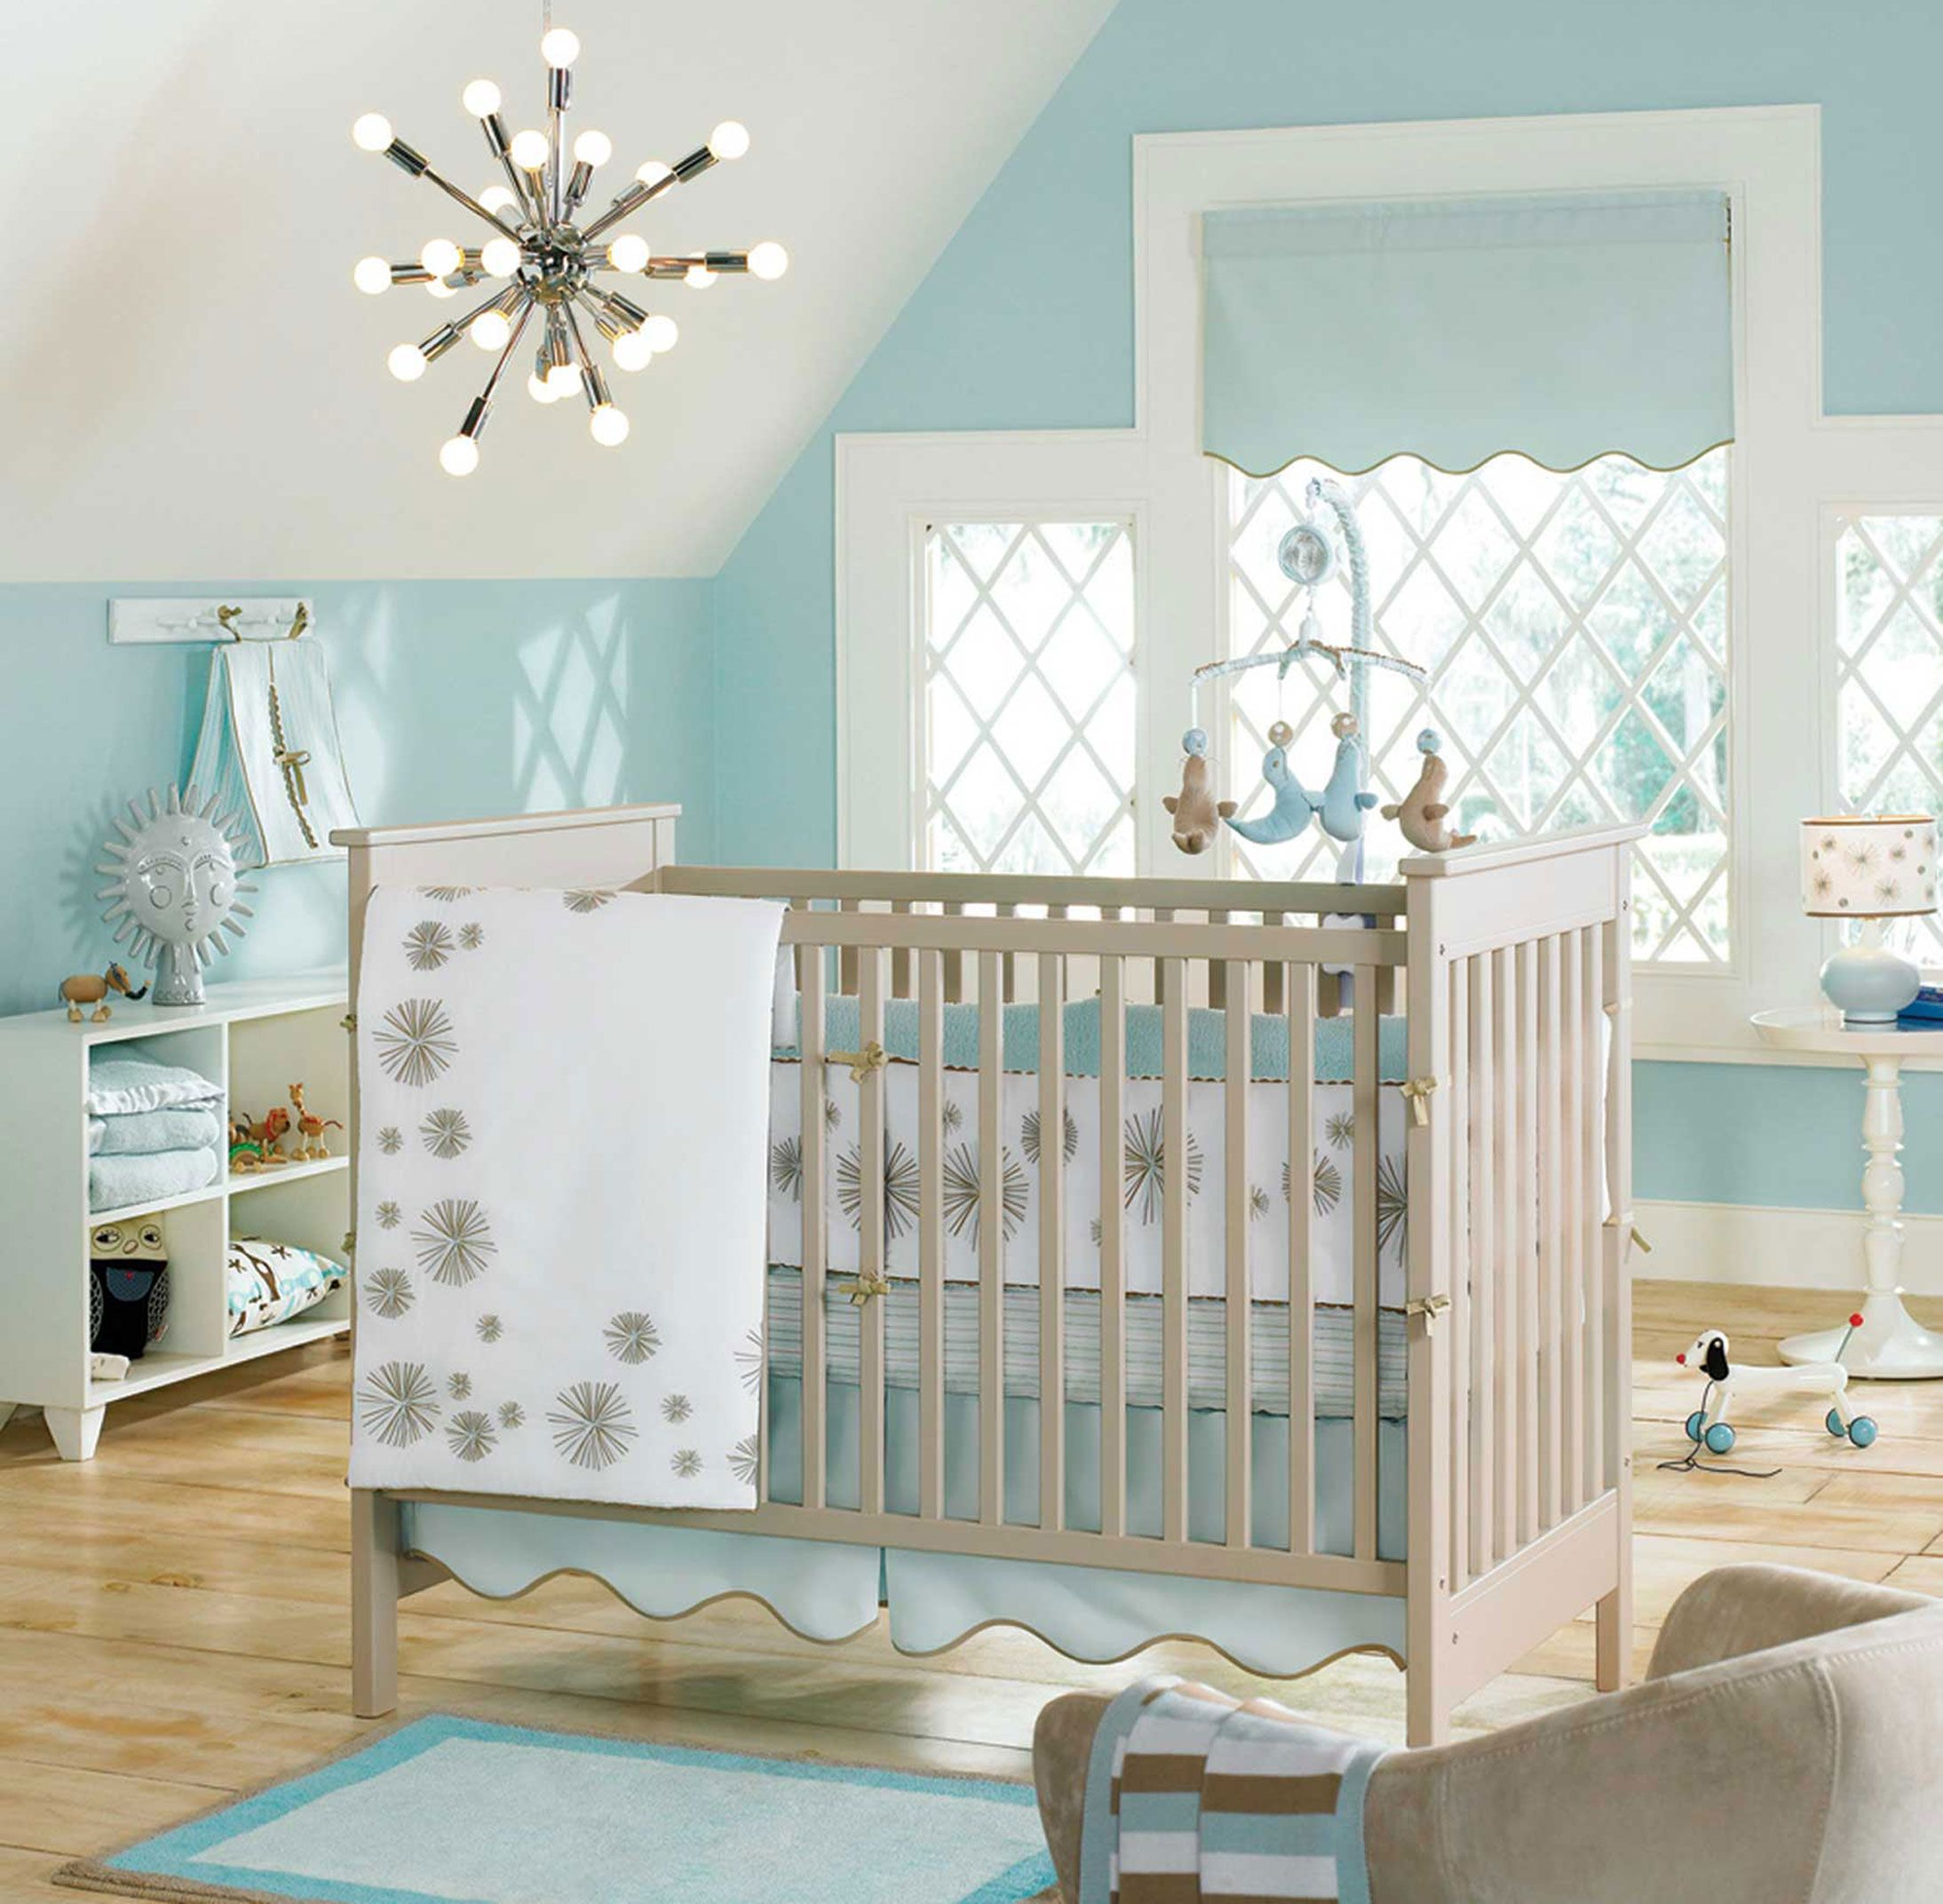 1000 Images About Boy Nursery Ideas On Pinterest  Baby Mobiles Giraffe And Crib Mobile  S